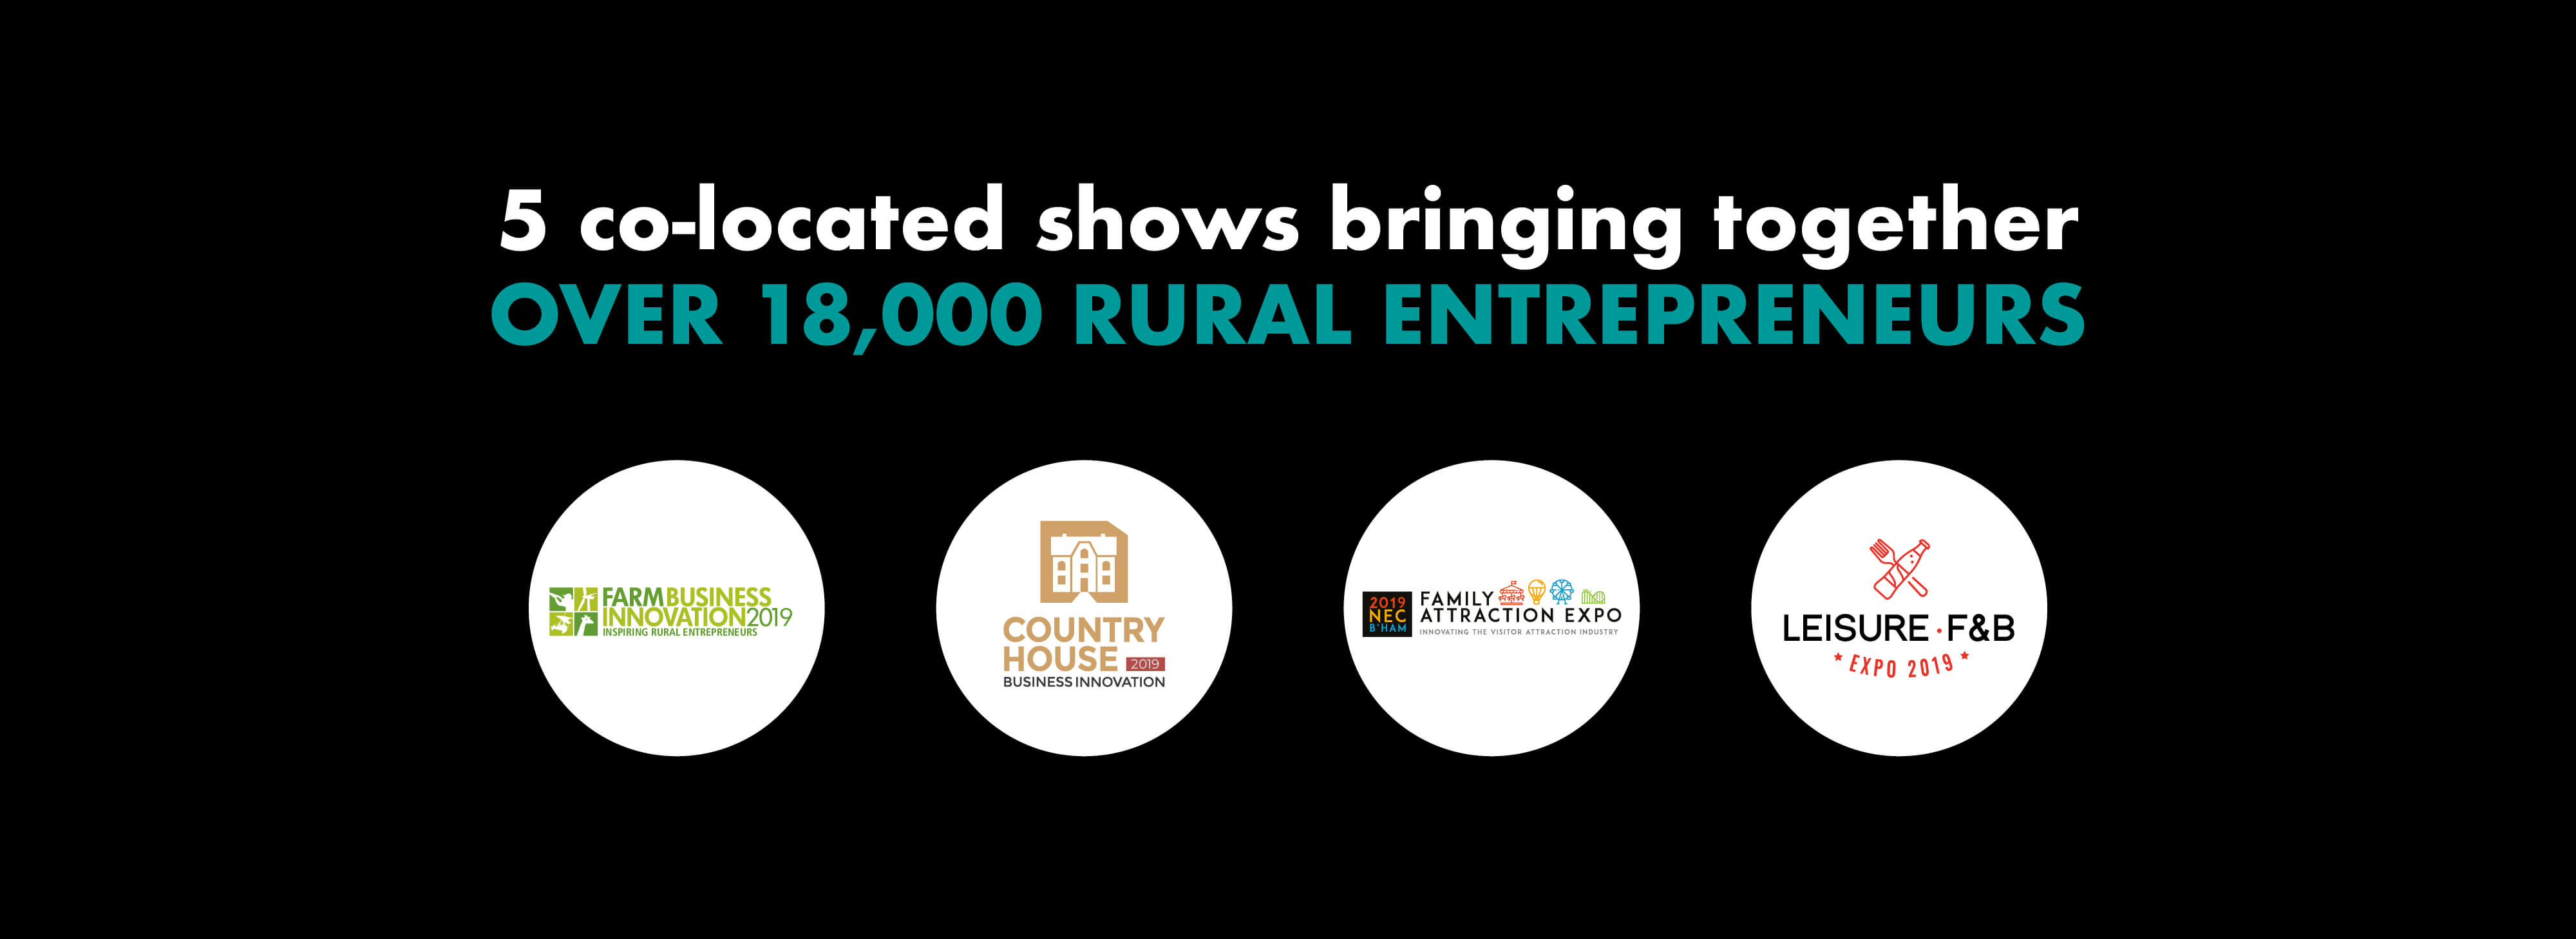 The Holiday Park & Resort Innovation Show attended by over 18,000 rural entrepreneurs!